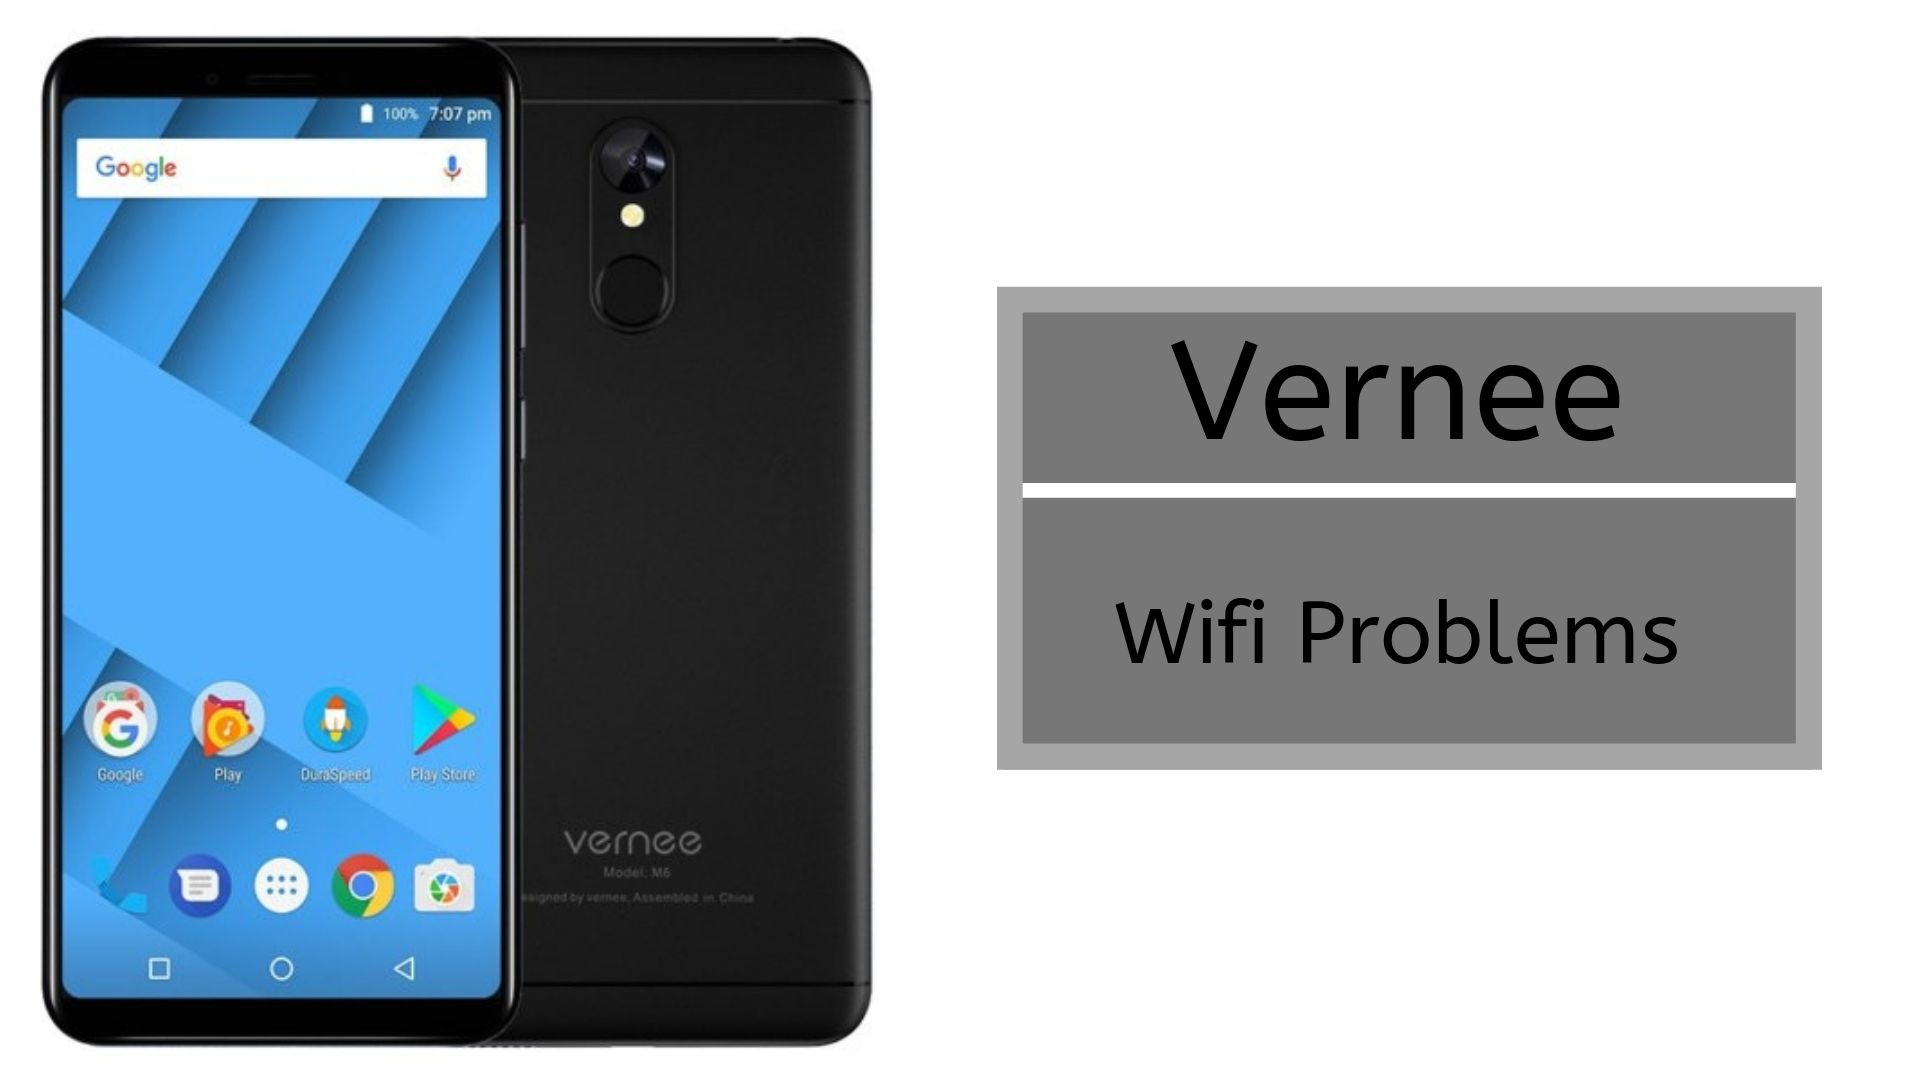 Quick Guide To Fix Vernee Wifi Problems [Troubleshoot]